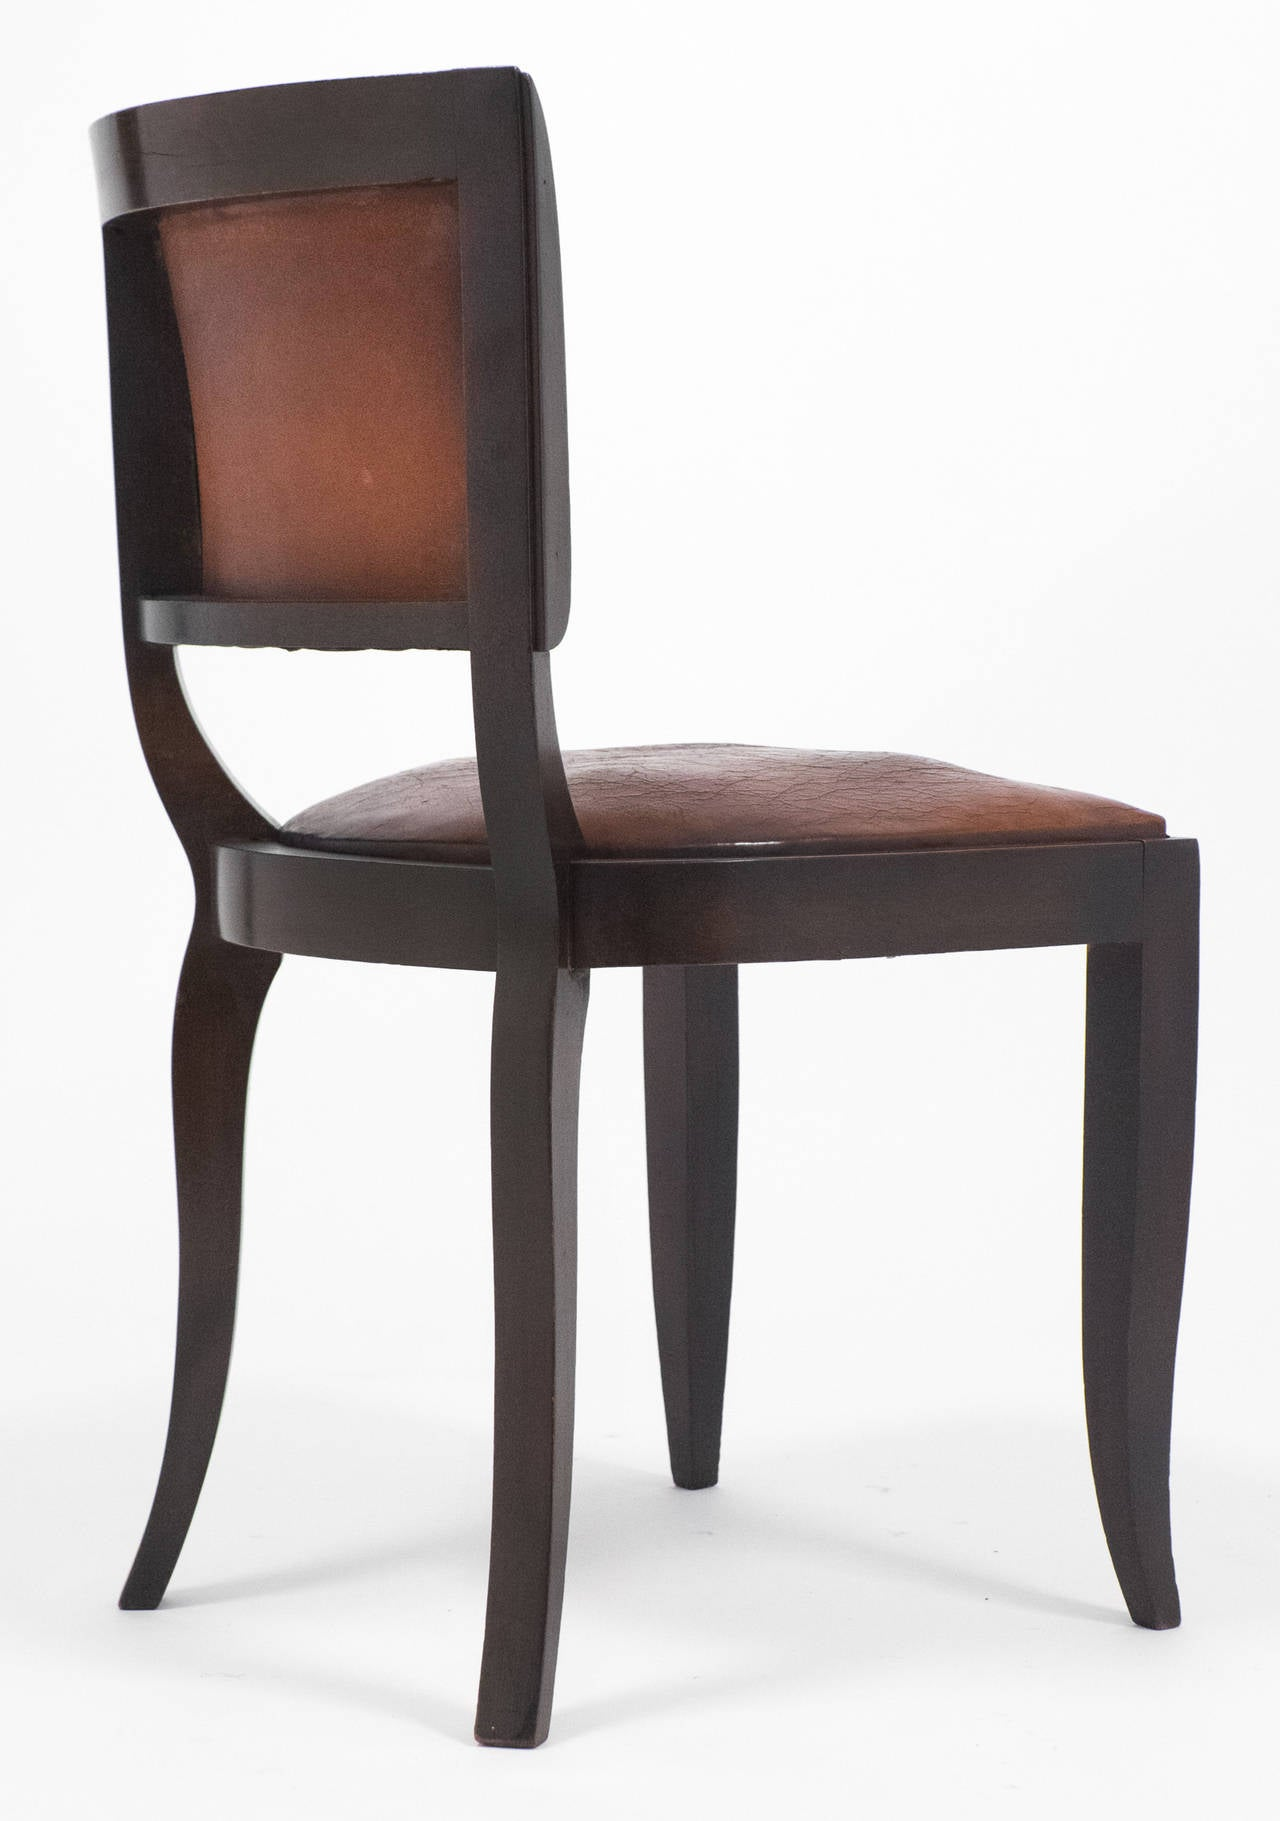 French Art Deco Set of Six Leather Dining Chairs at 1stdibs : 14E52frenchvintagesetofsixleatherdiningchairsfl from www.1stdibs.com size 1280 x 1821 jpeg 113kB